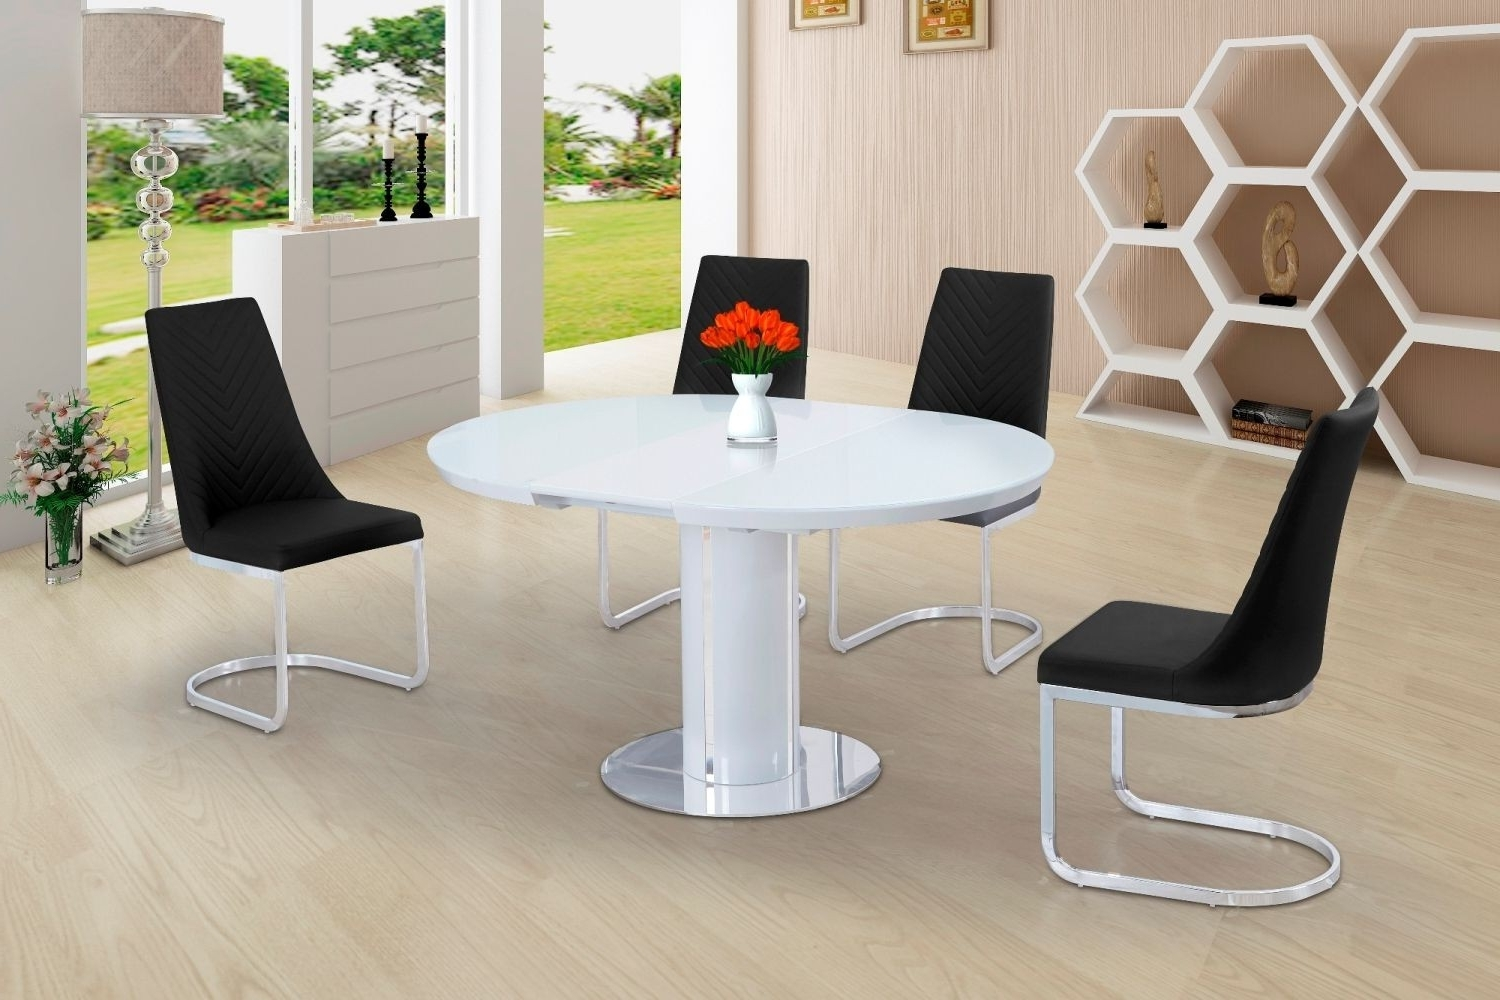 White Round Extendable Dining Tables Pertaining To Famous Buy Space Saving White Gloss Extending Round Dining Table (View 19 of 25)